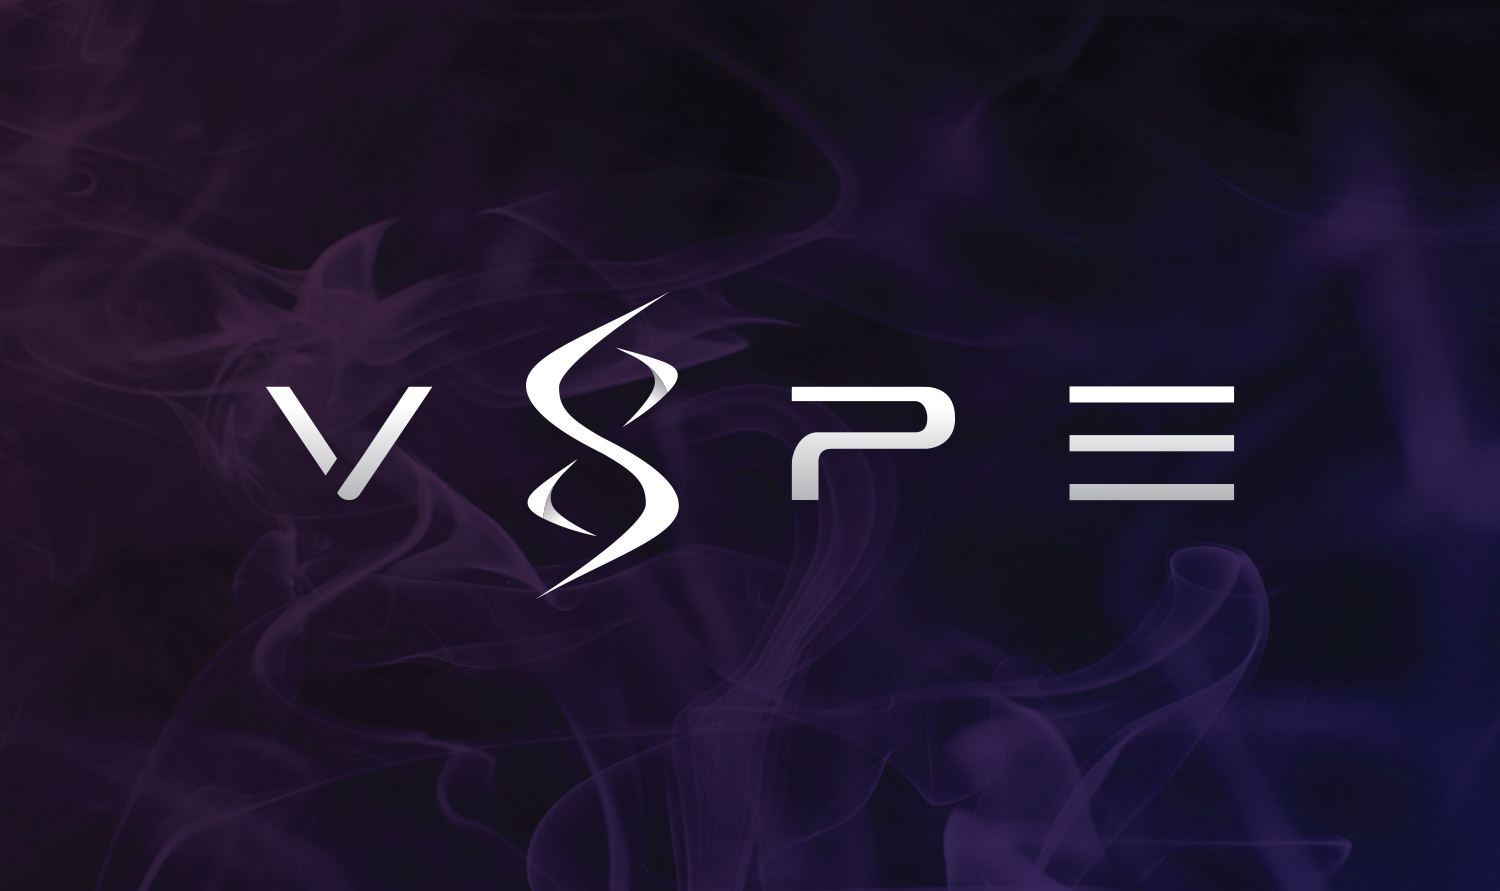 v8pe-logo-featured-smoke-image